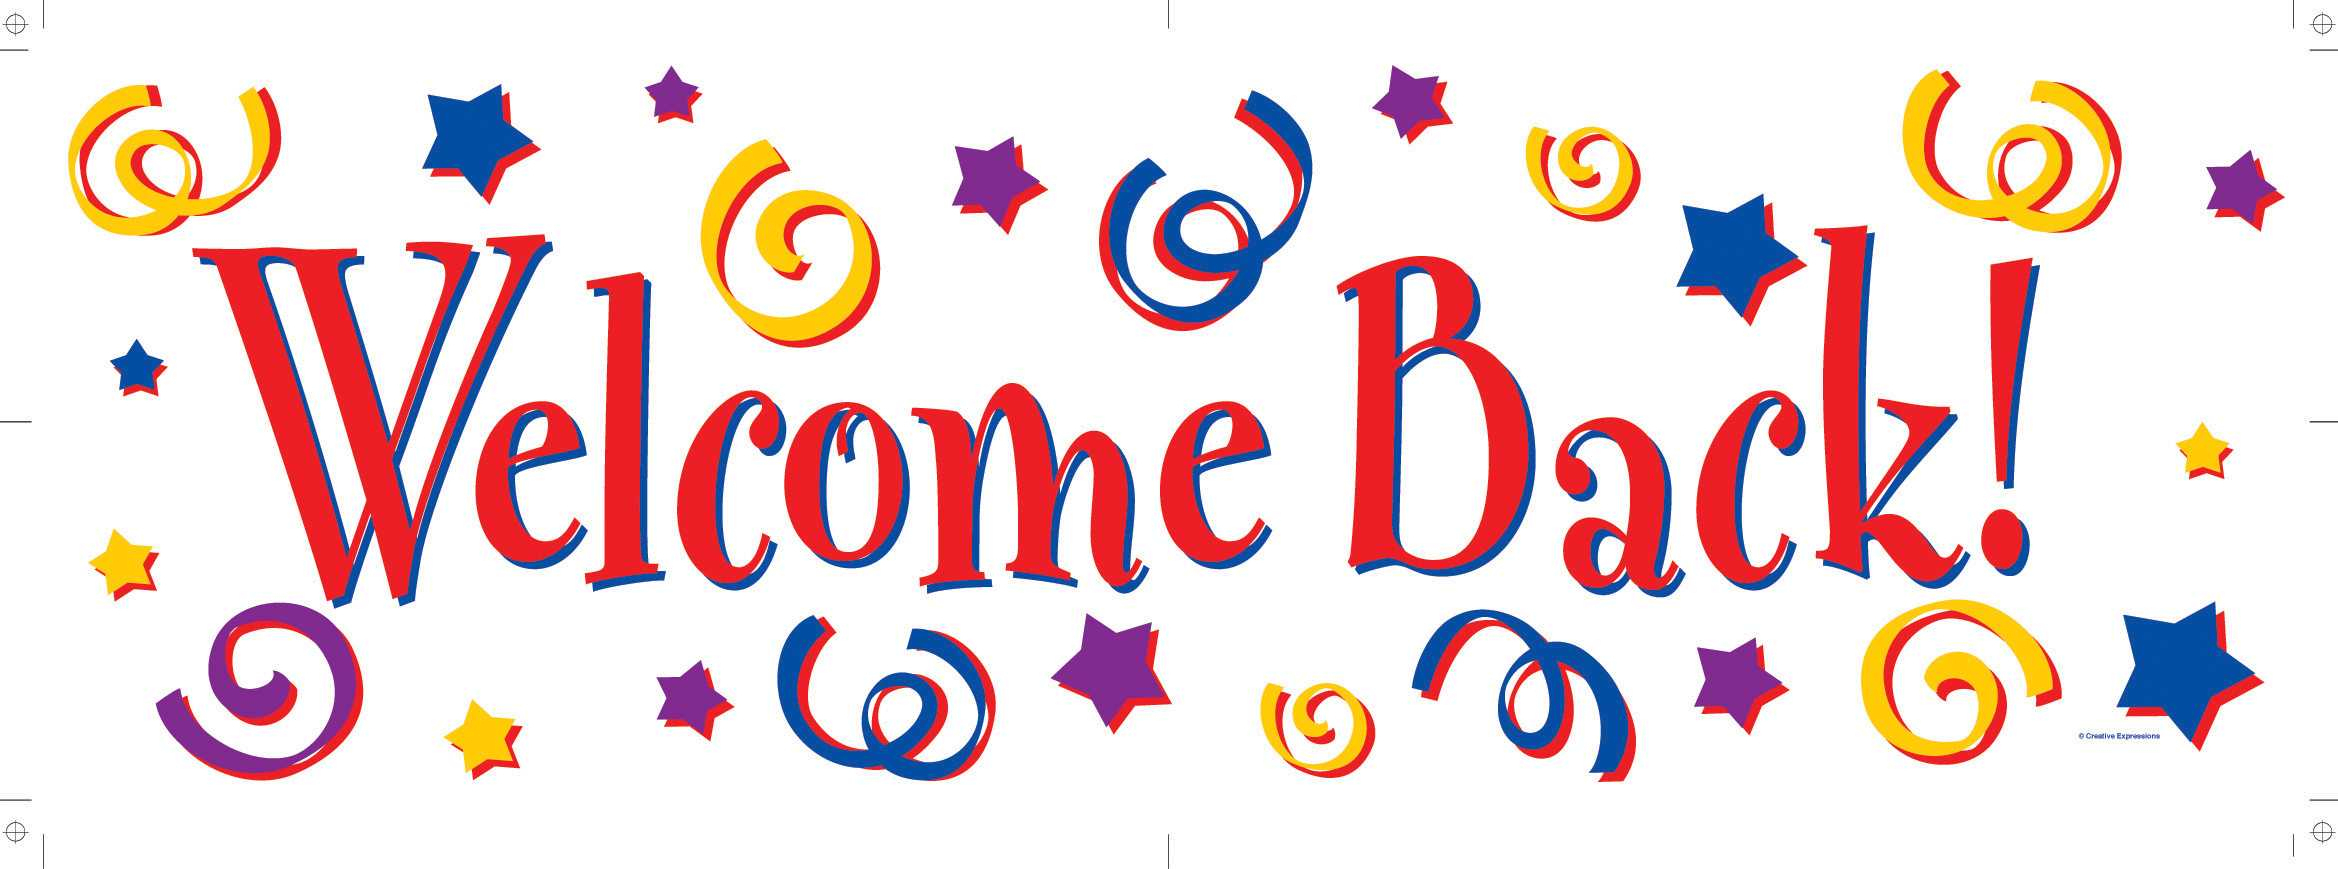 Banner Ideas Design Templates Free Printables Luxury Welcome Home - Free Printable Welcome Back Signs For Work